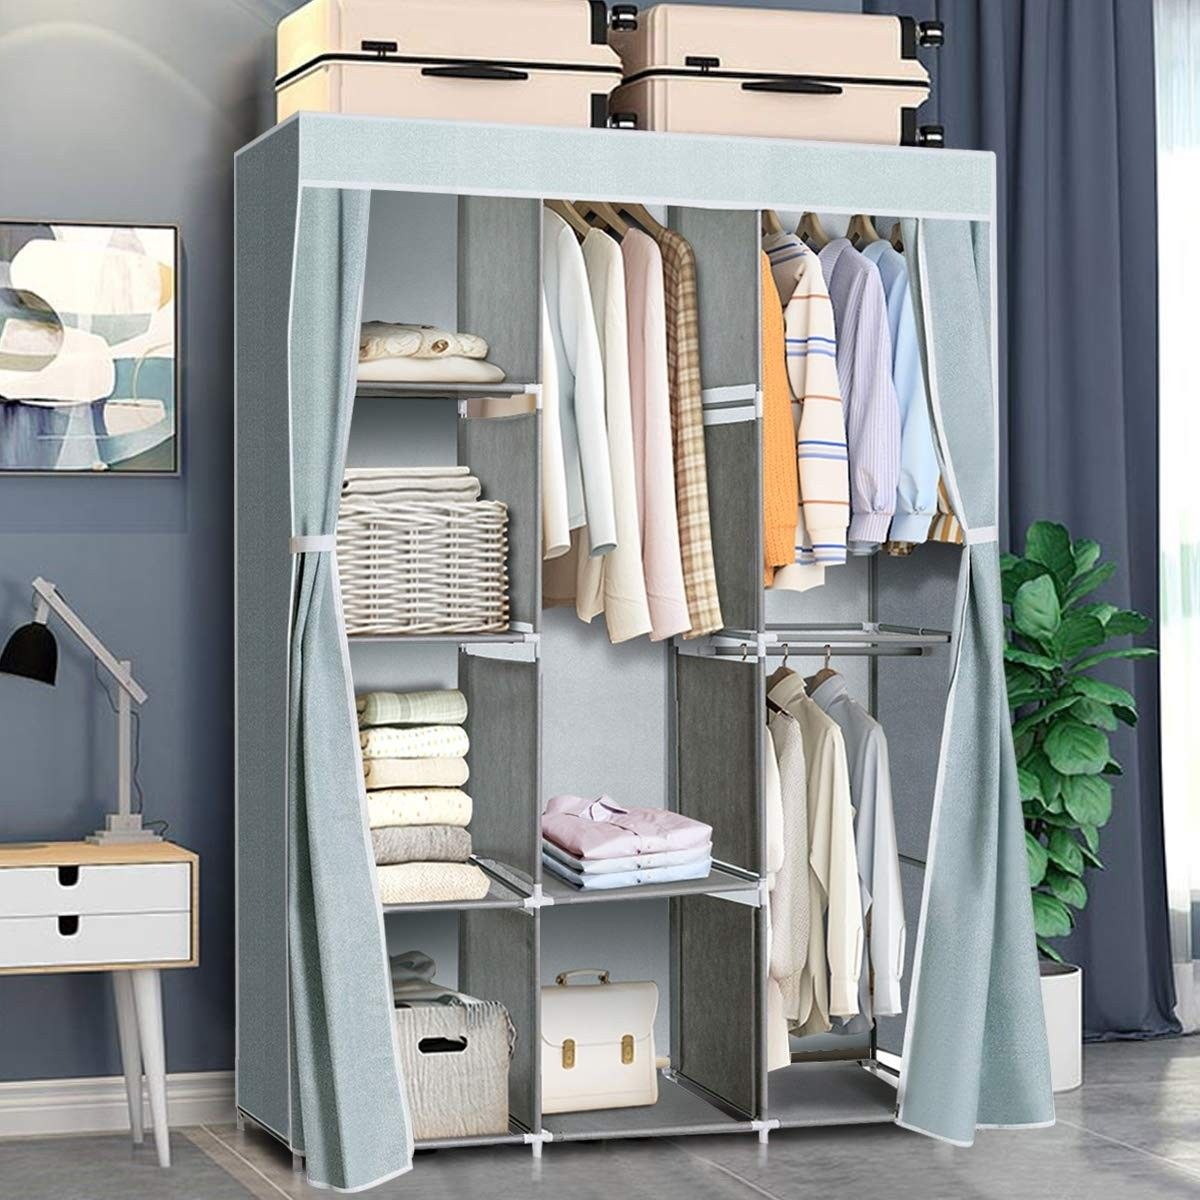 Portable Clothes Closet Storage Organizer Clothes Rack 36 95 Free Shipping Our Portable Cl Closet Clothes Storage Storage Closet Organization Closet Storage